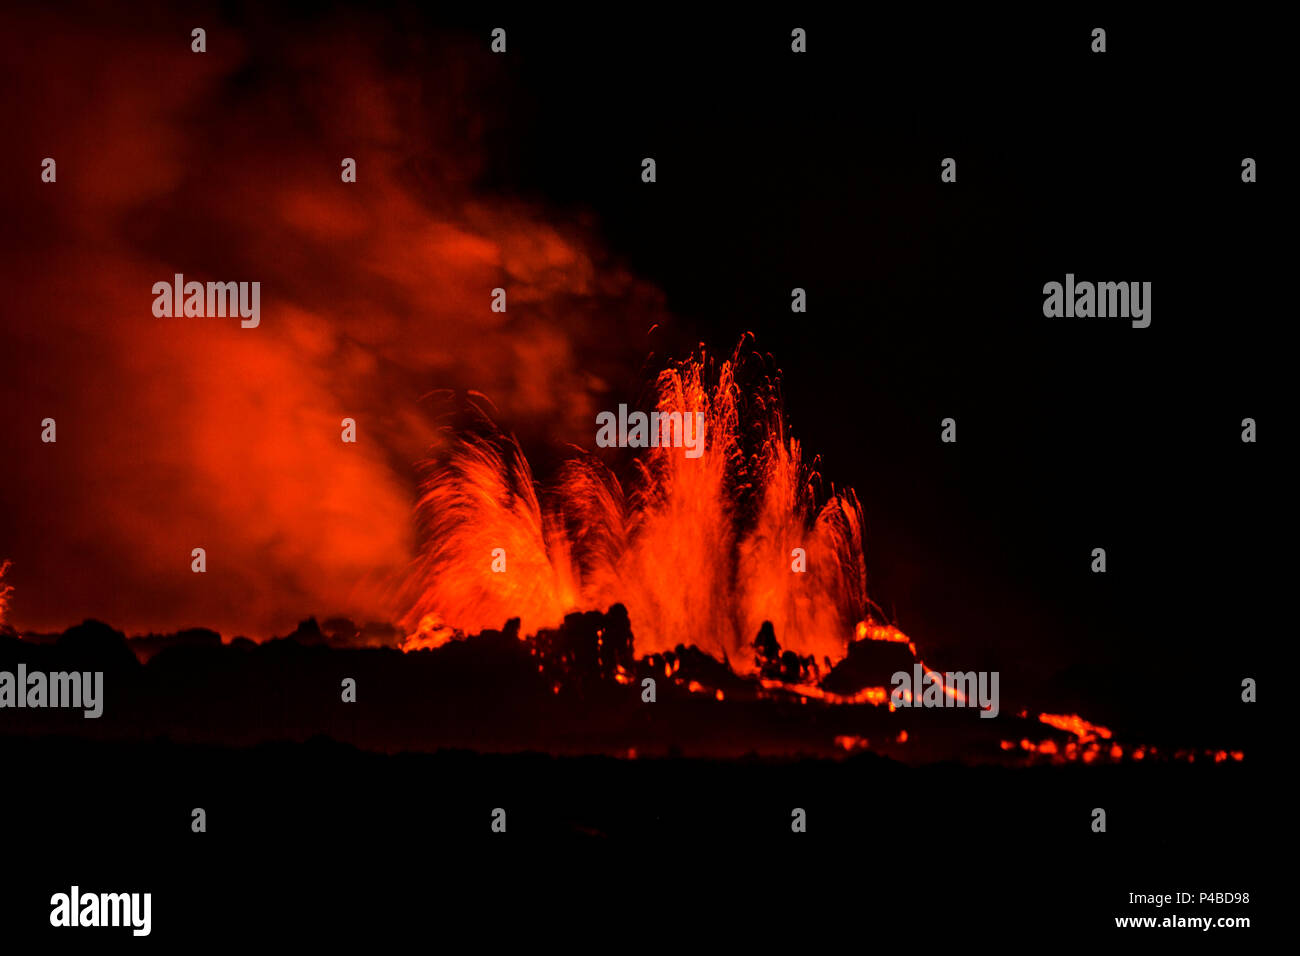 Lava fountains at night, eruption at the Holuhraun Fissure, near the Bardarbunga Volcano, Iceland. August 29, 2014 a fissure eruption started in Holuhraun at the northern end of a magma intrusion, which had moved progressively north, from the Bardarbunga volcano. Picture Date-Sept. 2, 2014 Stock Photo